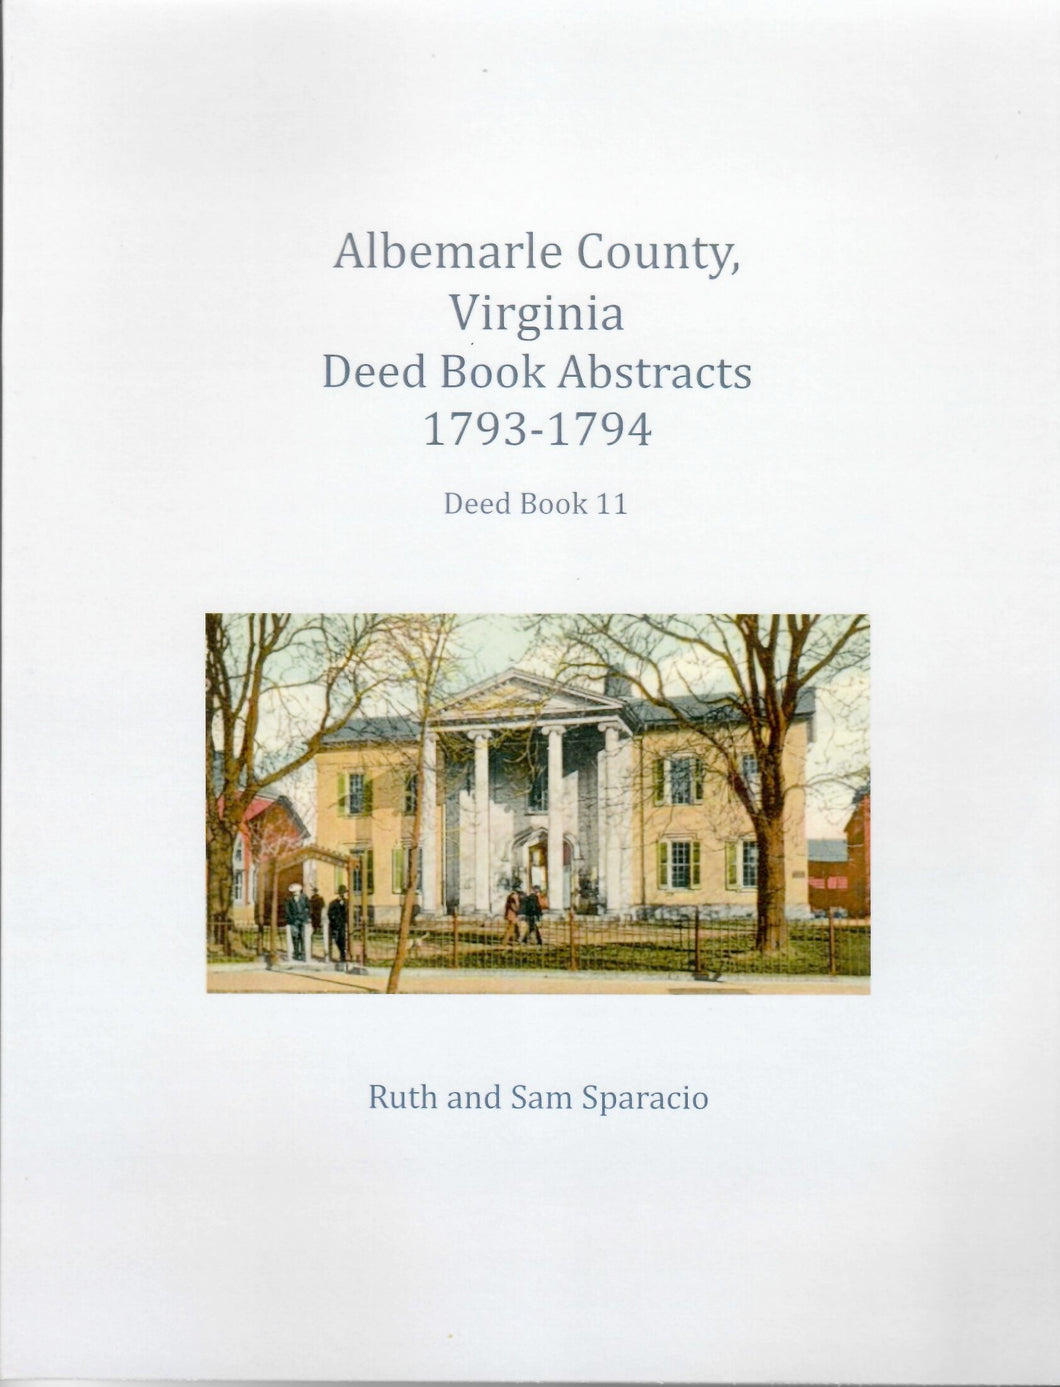 Albemarle County, Virginia Deed Book Abstracts, 1793-1794